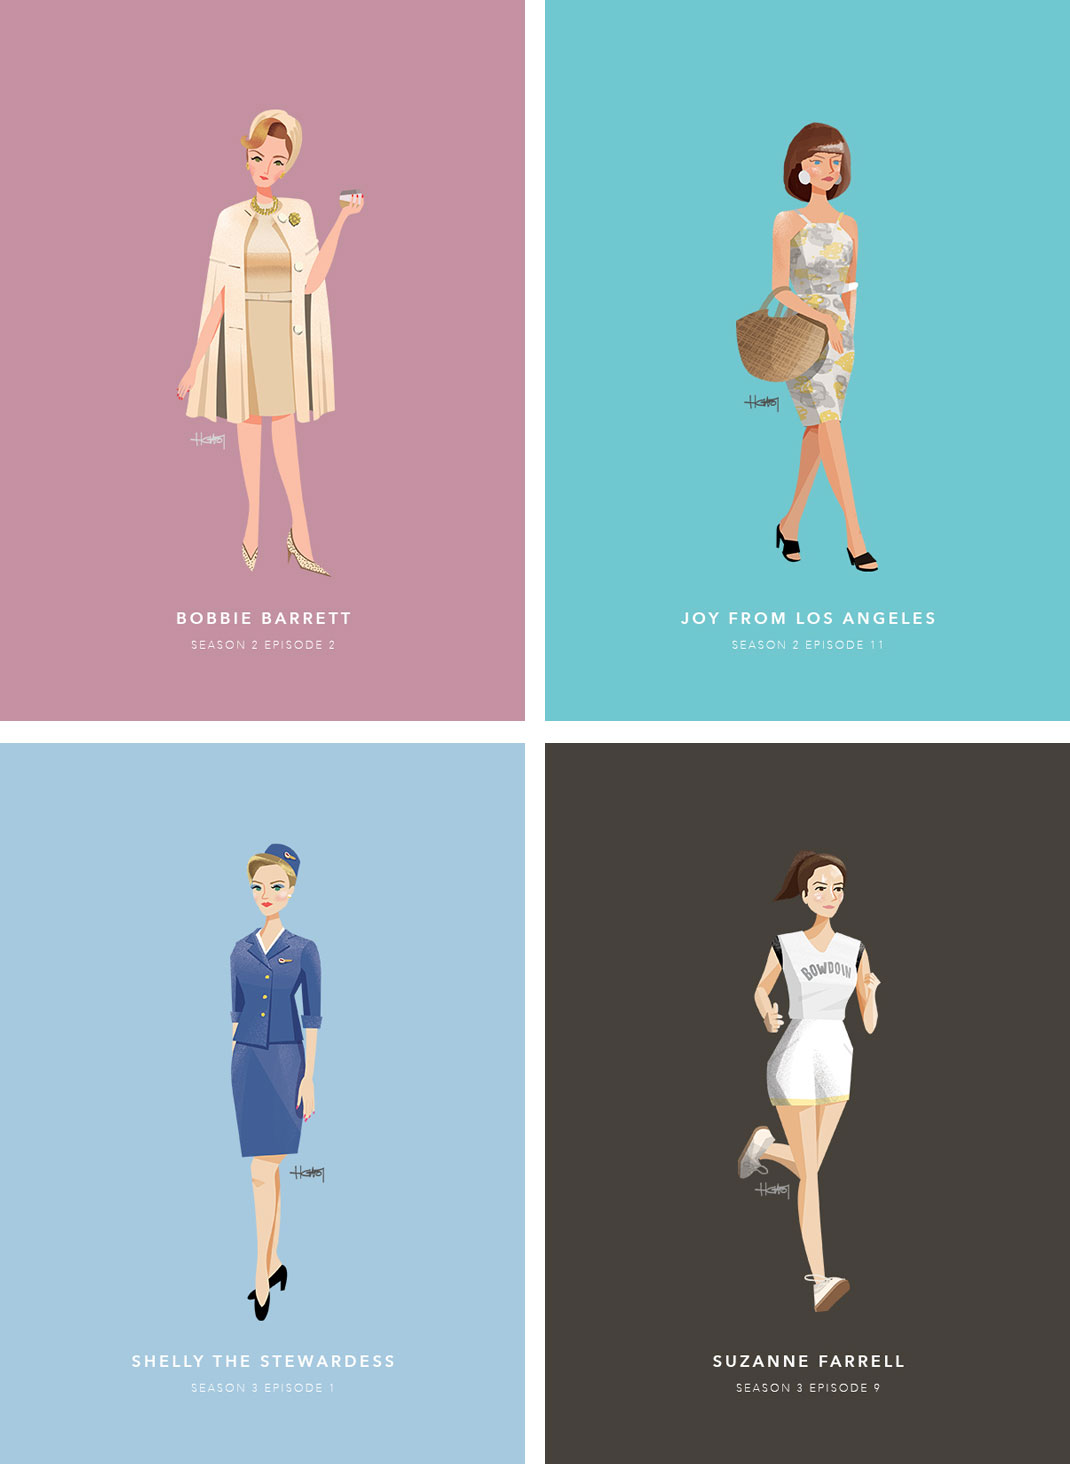 The Women of Don Draper